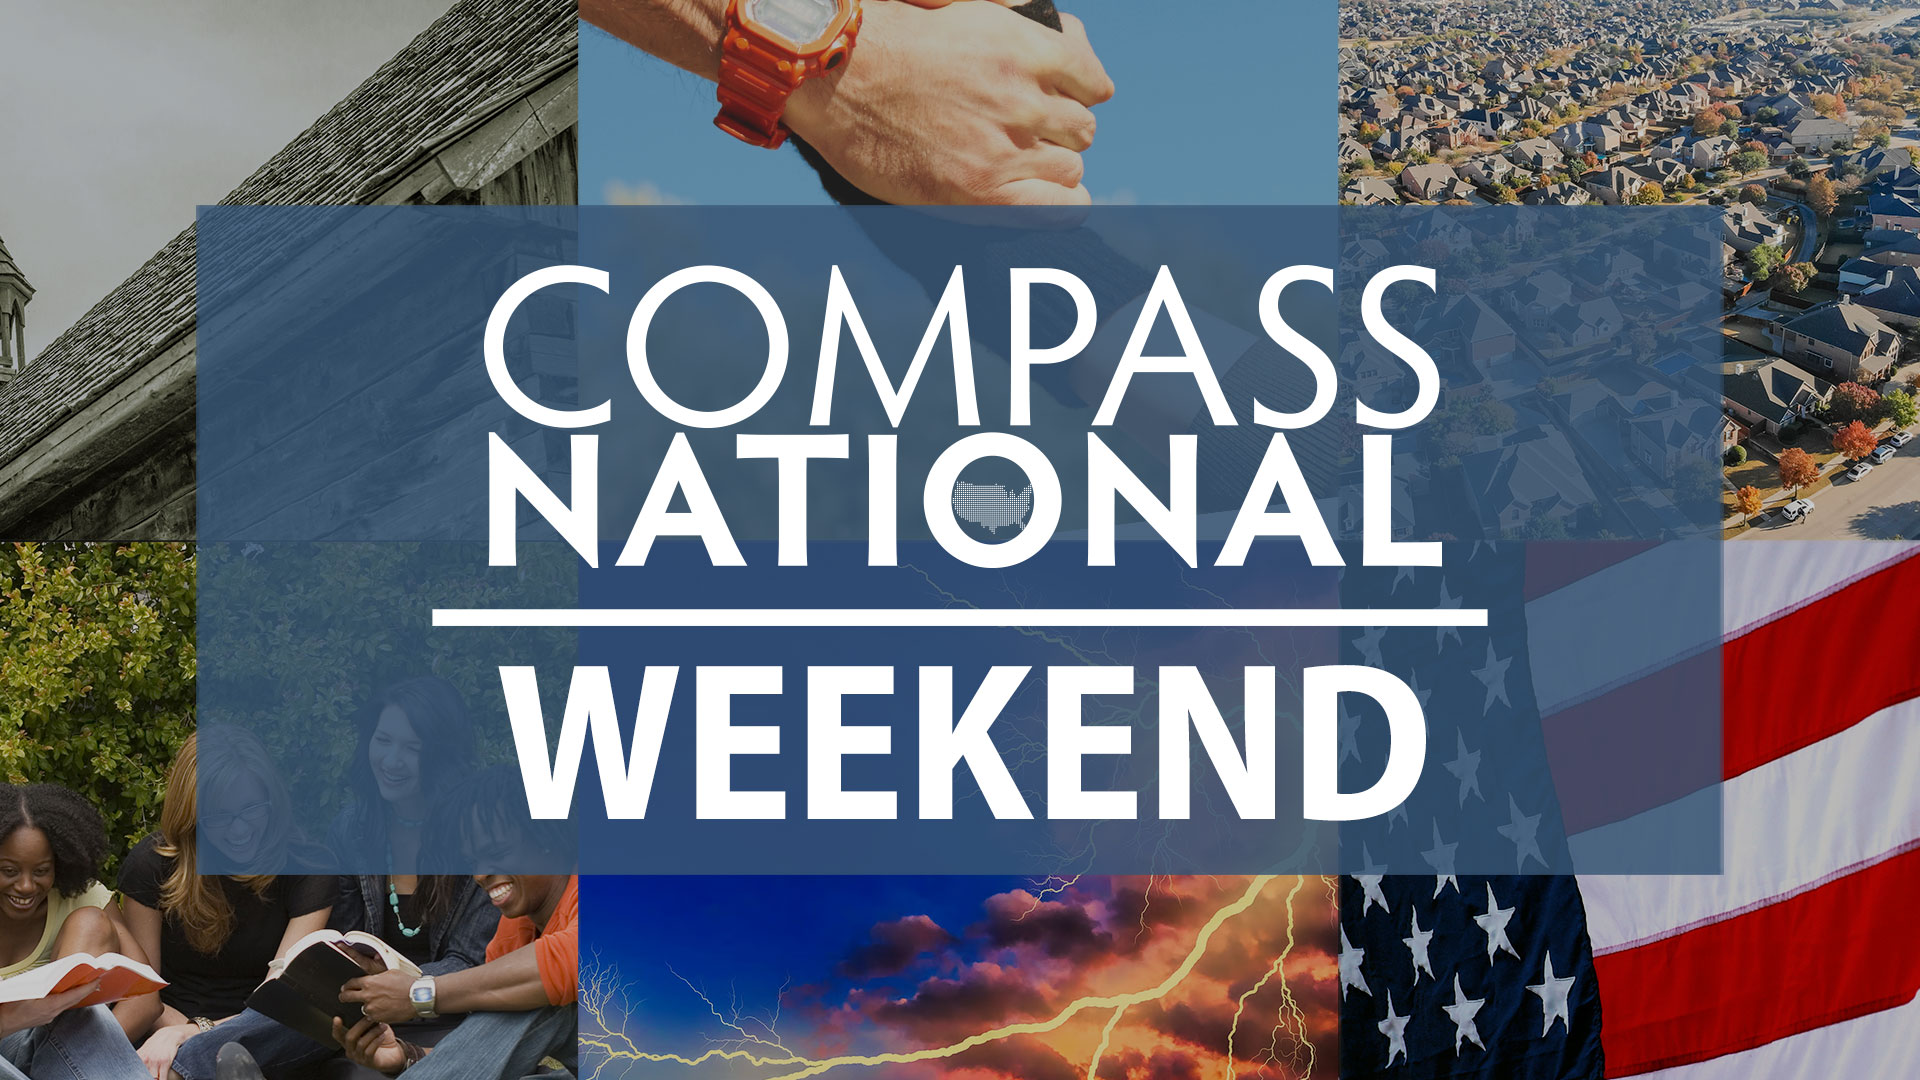 CompassNational Weekend